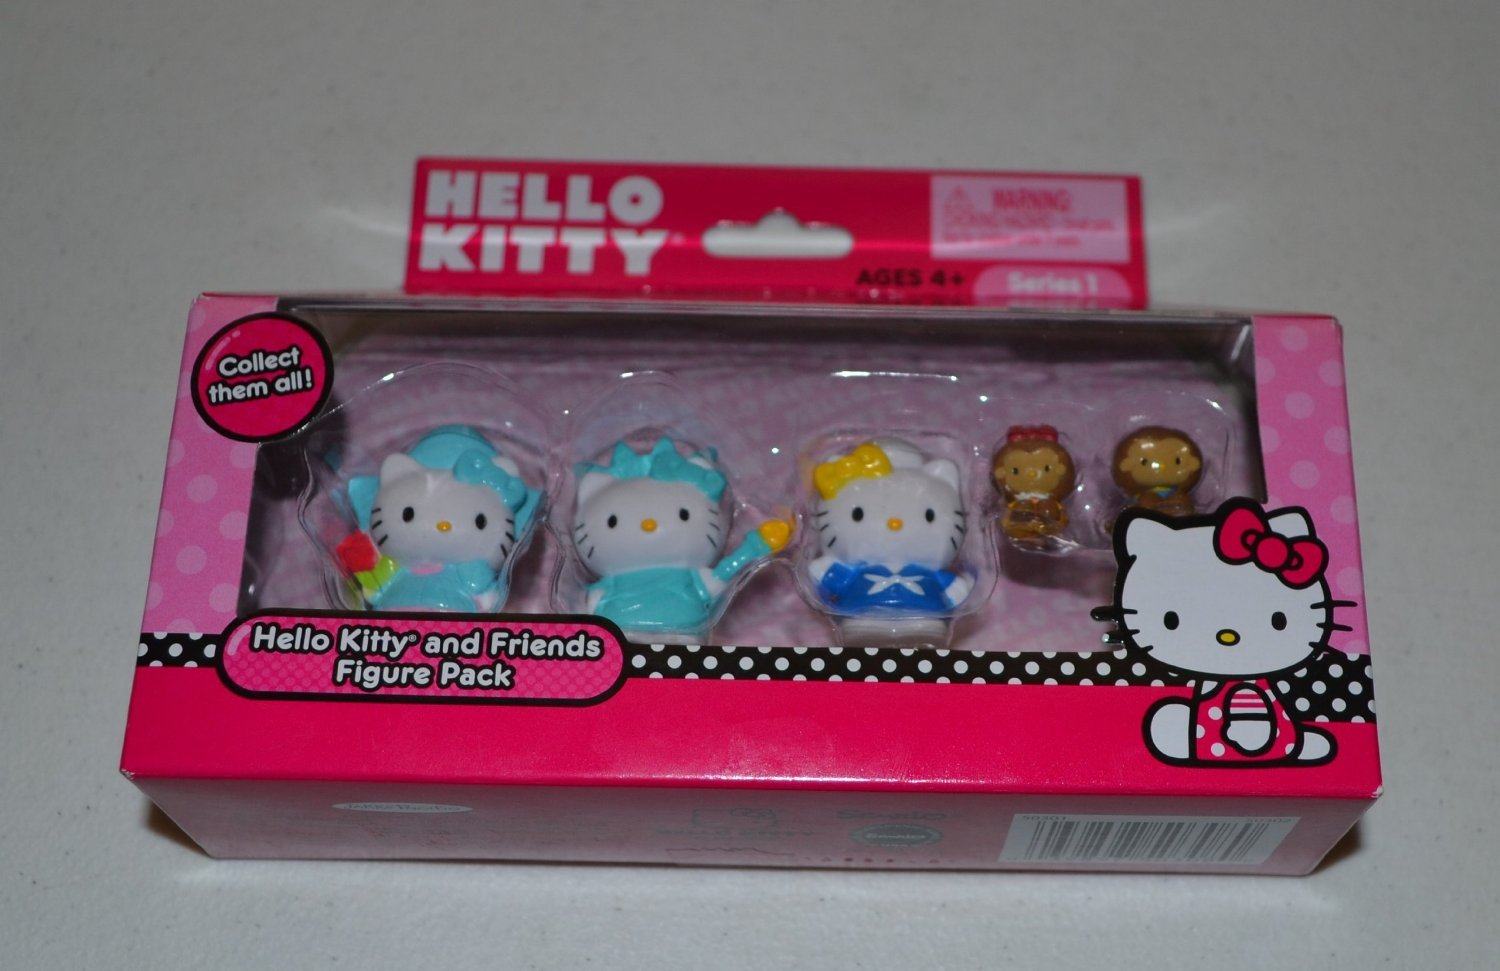 Hello Kitty and Friends Series 1 Style 5 Figure Pack